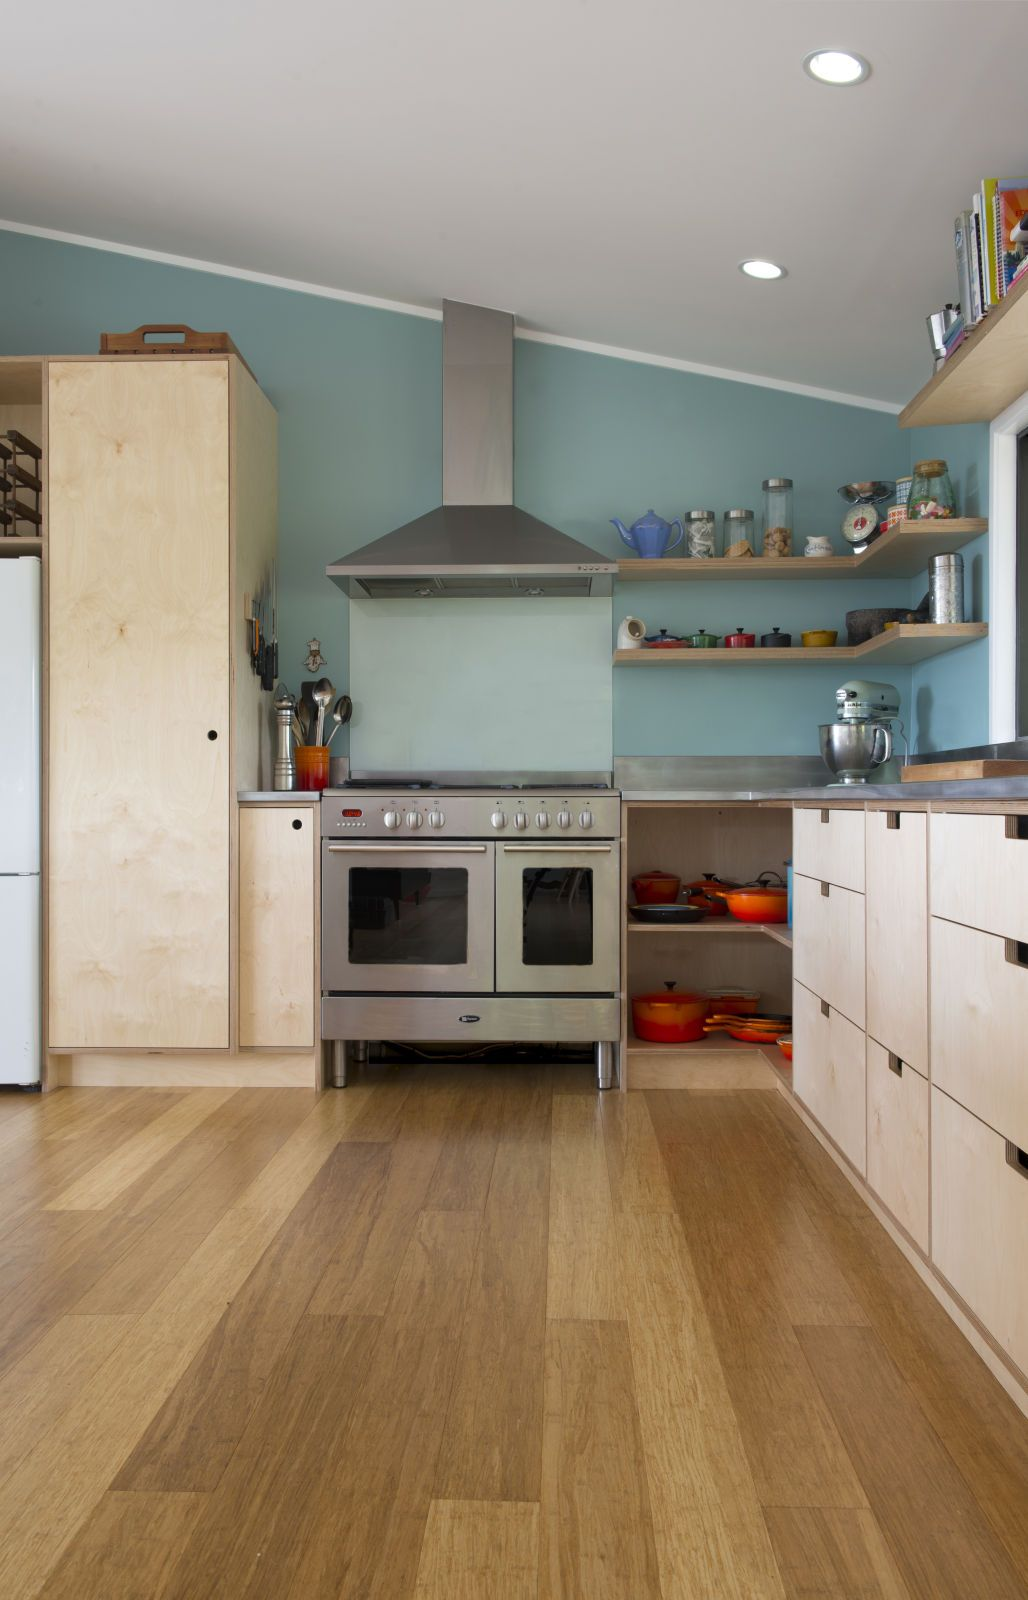 plywood kitchen cabinets hood vents is emerging as a must have for interiors using